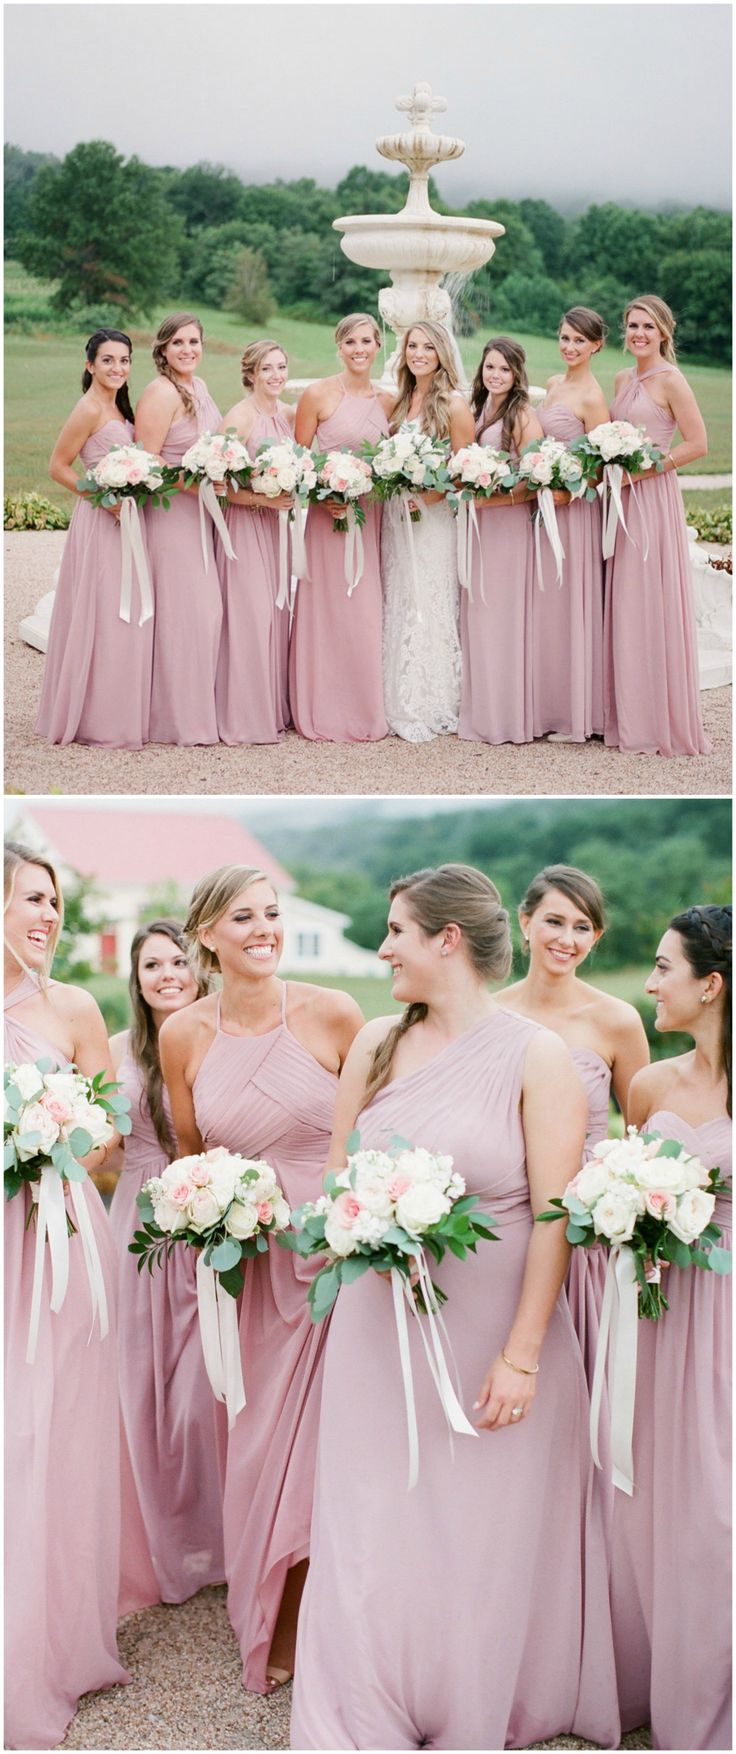 Best 25 romantic bridesmaid dresses ideas on pinterest romantic bridesmaid fashion pink high necked bridesmaid dresses pink and white wedding bouquets ombrellifo Images